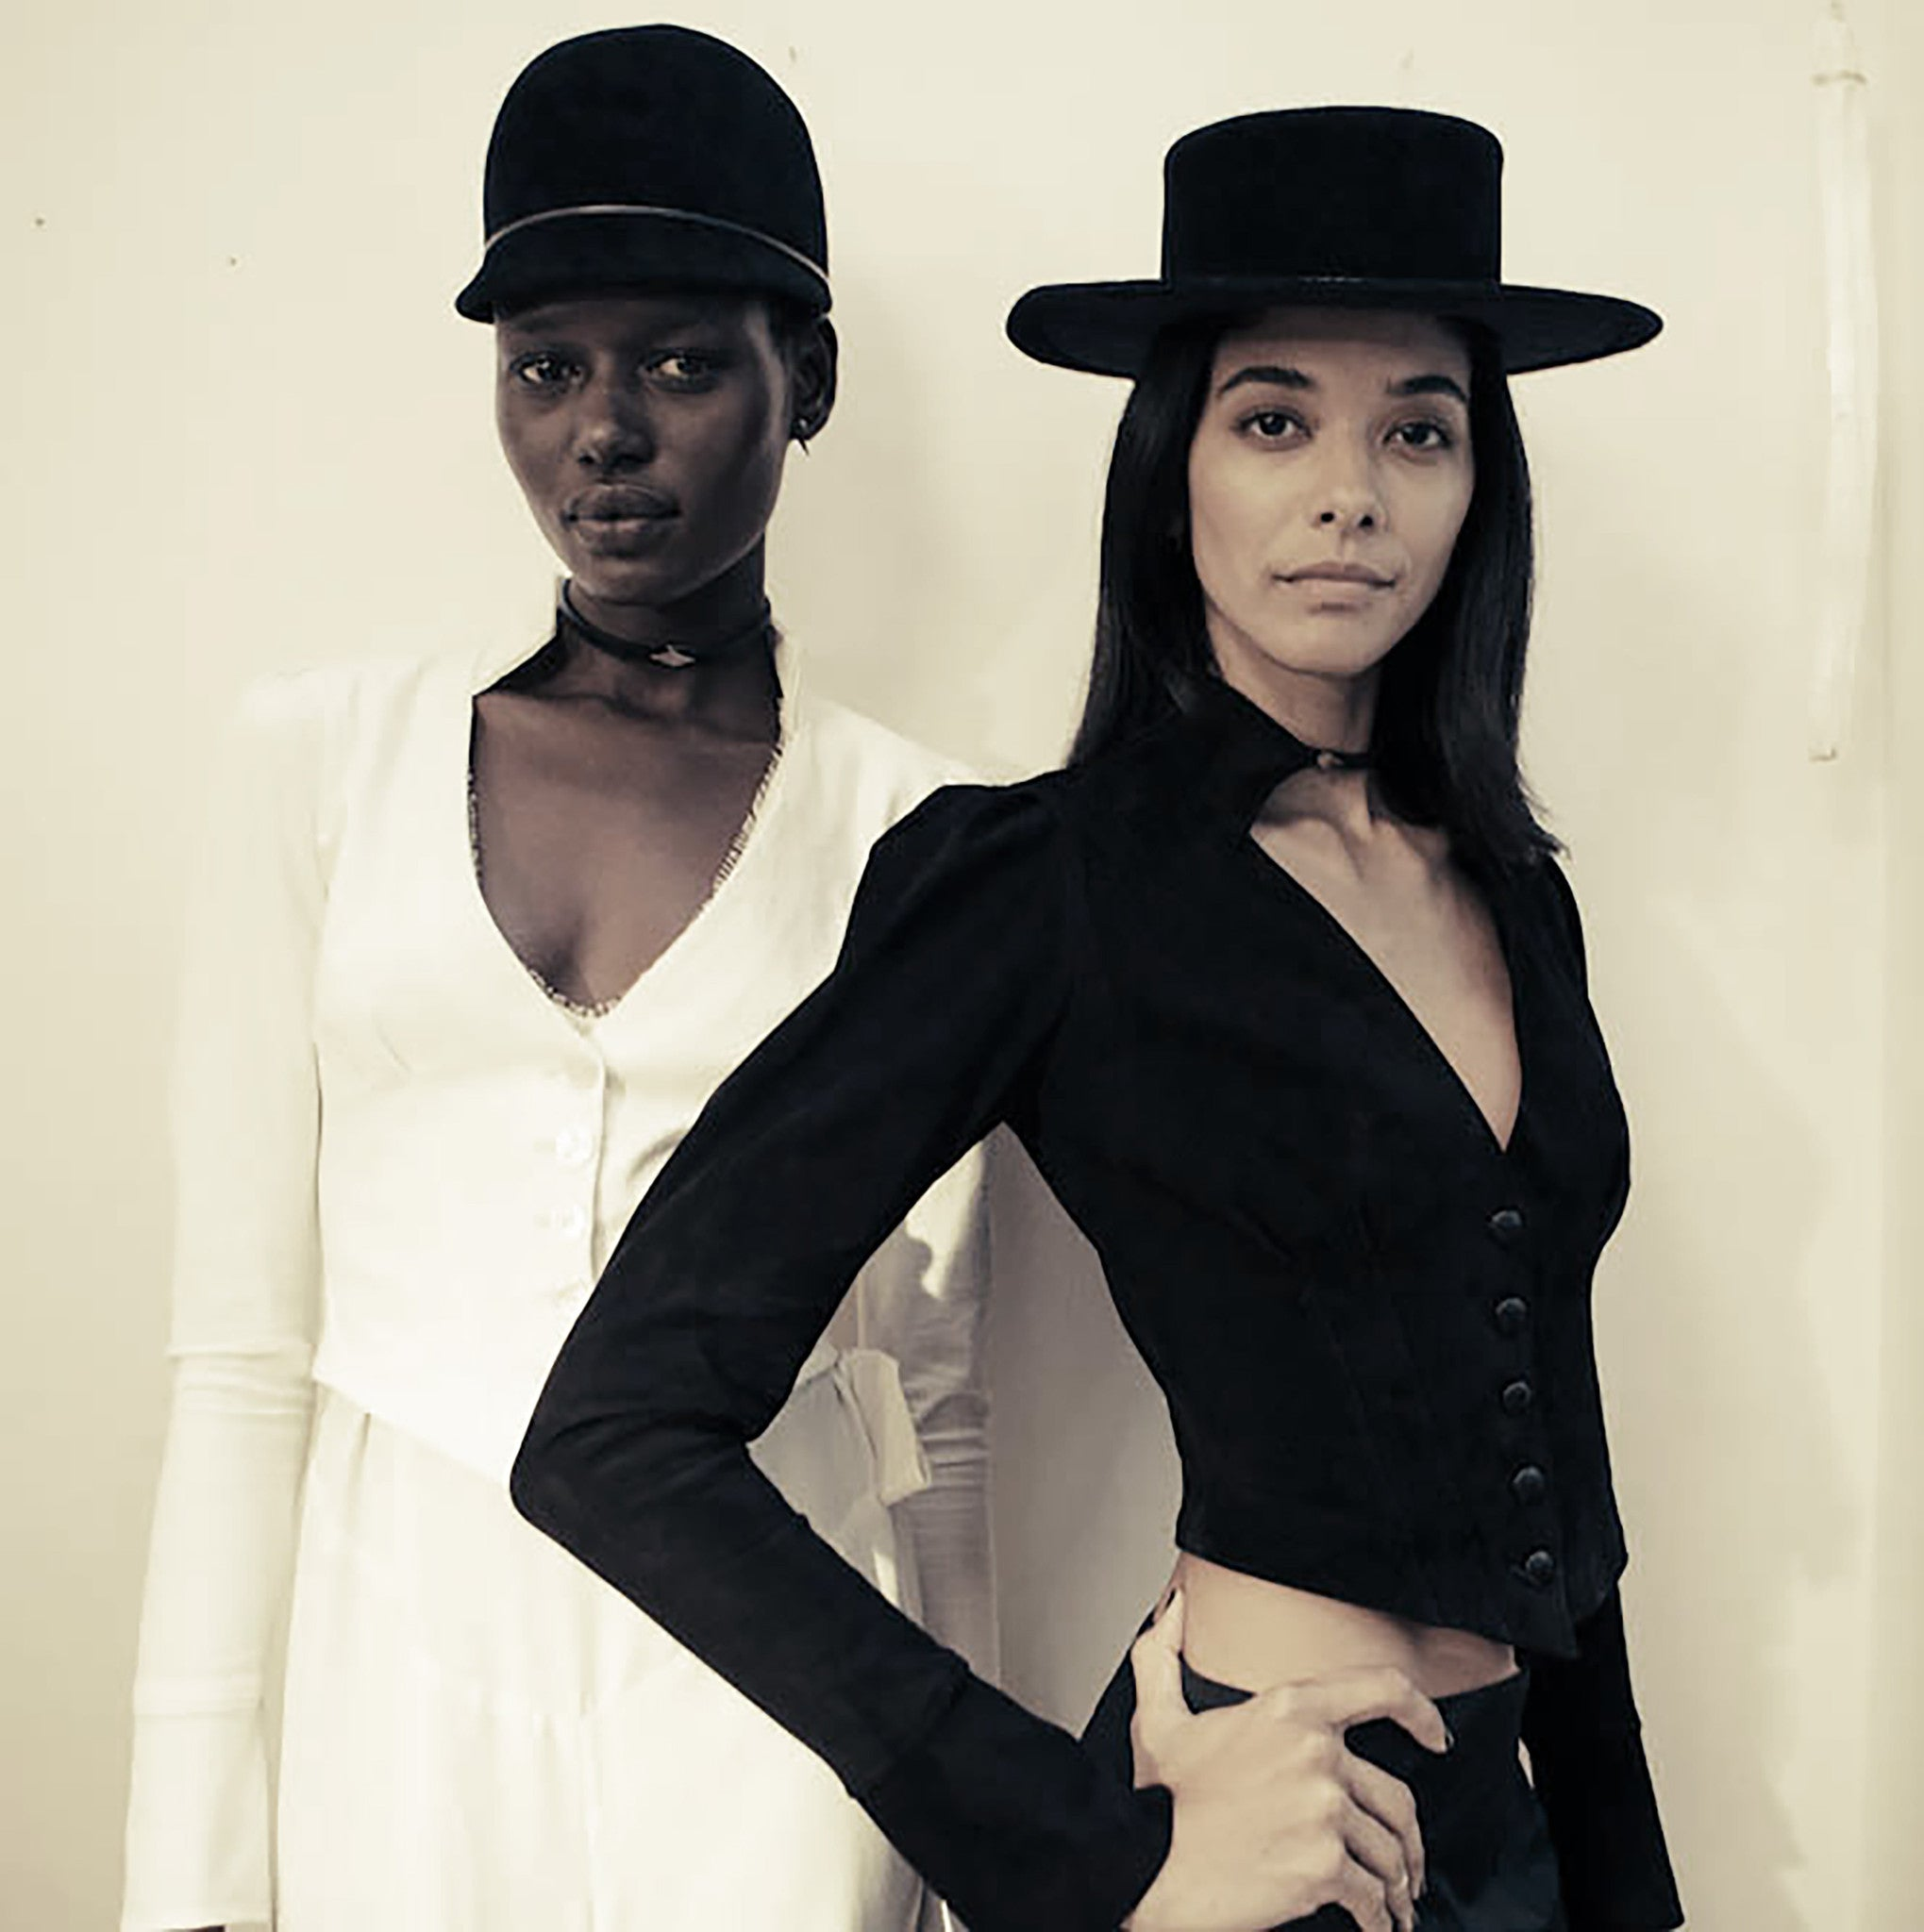 Ajak Deng IMG Model Heidy de la Rosa Fitted White Victorian Jacket & Lace Jumper Wendy Nichol Clothing Designer Fashion Runway show SS15 handmade in NYC custom tailoring